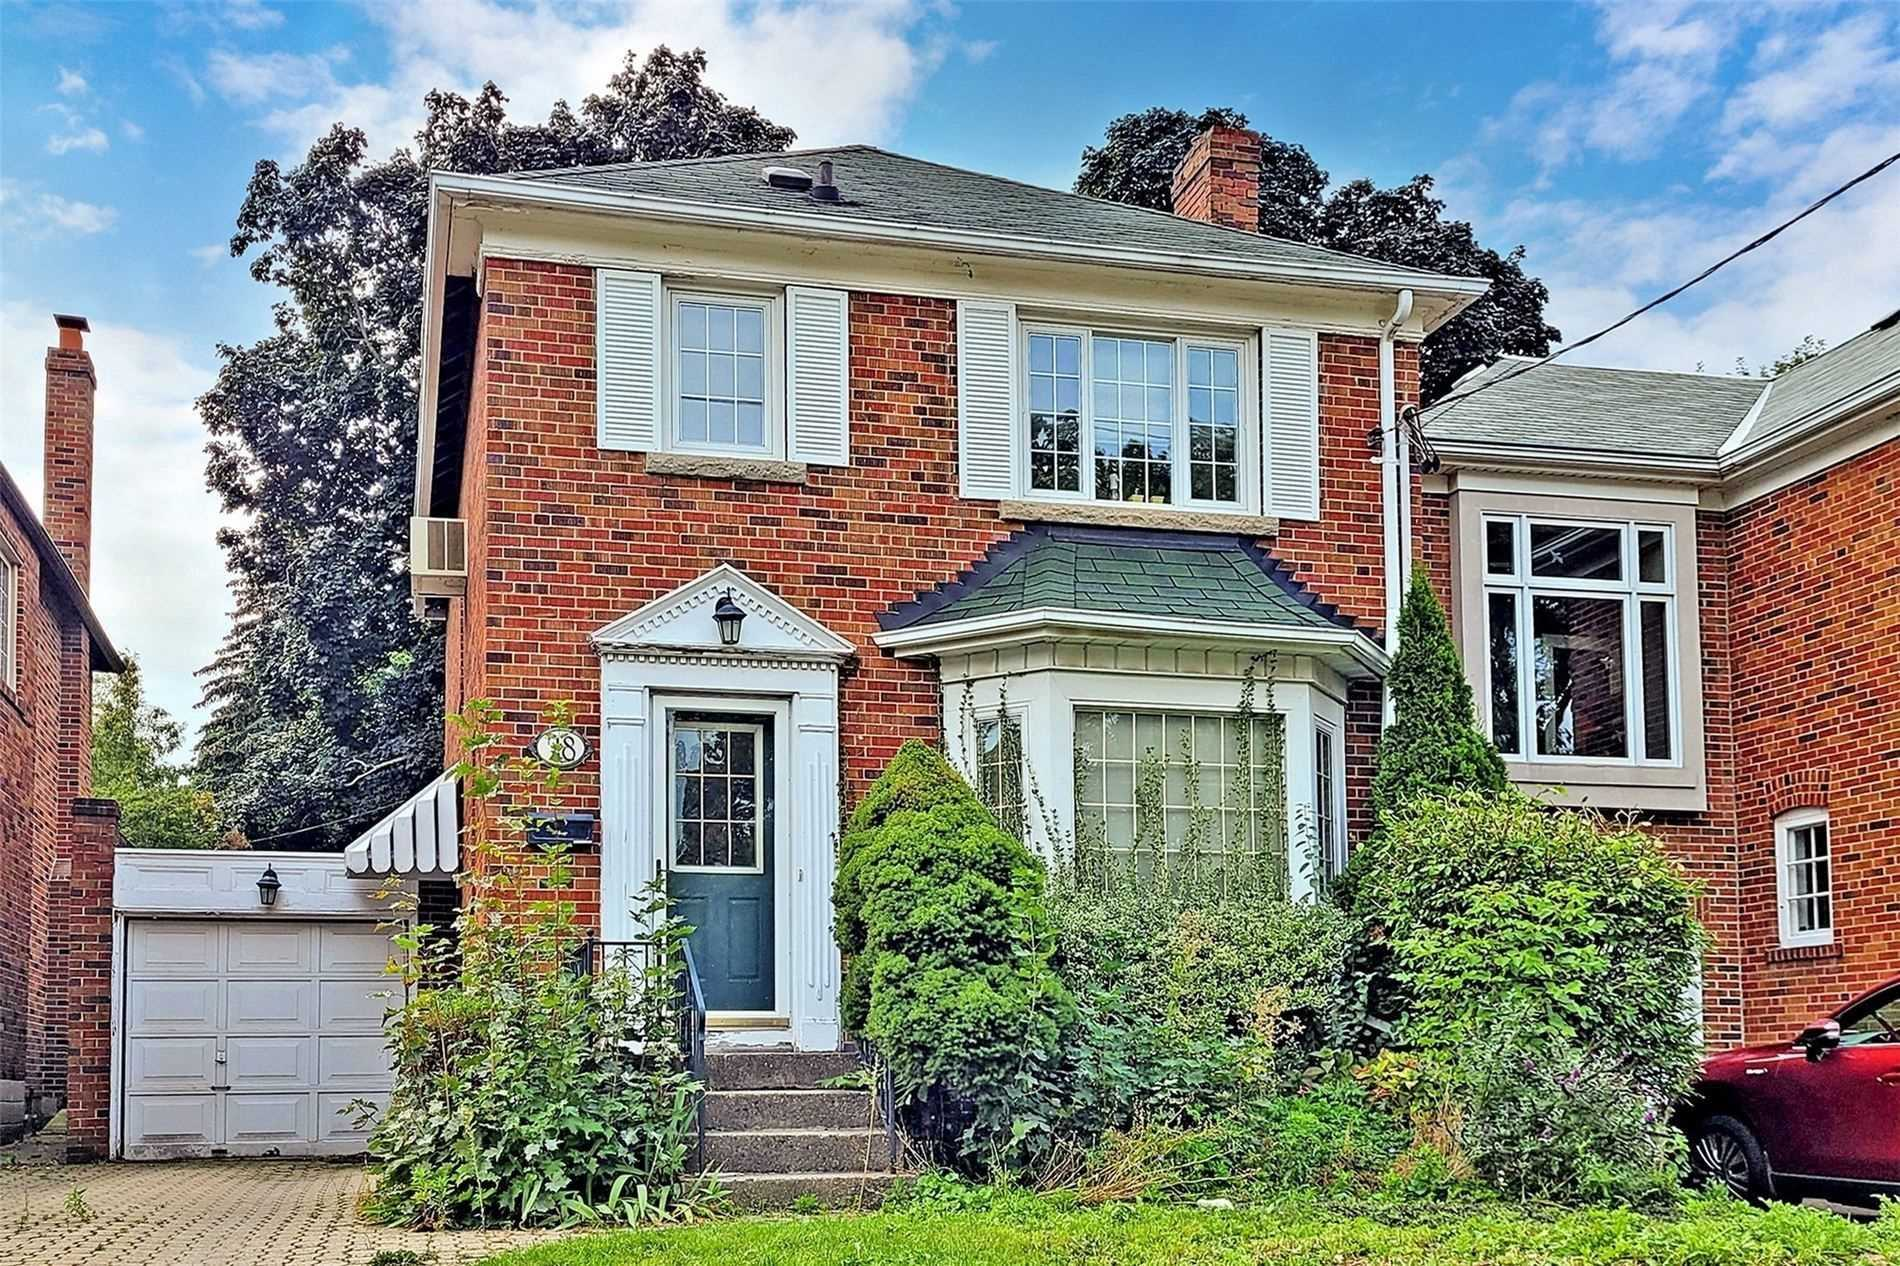 28 Tanager Ave, Toronto, Ontario M4G3R1, 3 Bedrooms Bedrooms, 8 Rooms Rooms,2 BathroomsBathrooms,Detached,For Sale,Tanager,C5390546